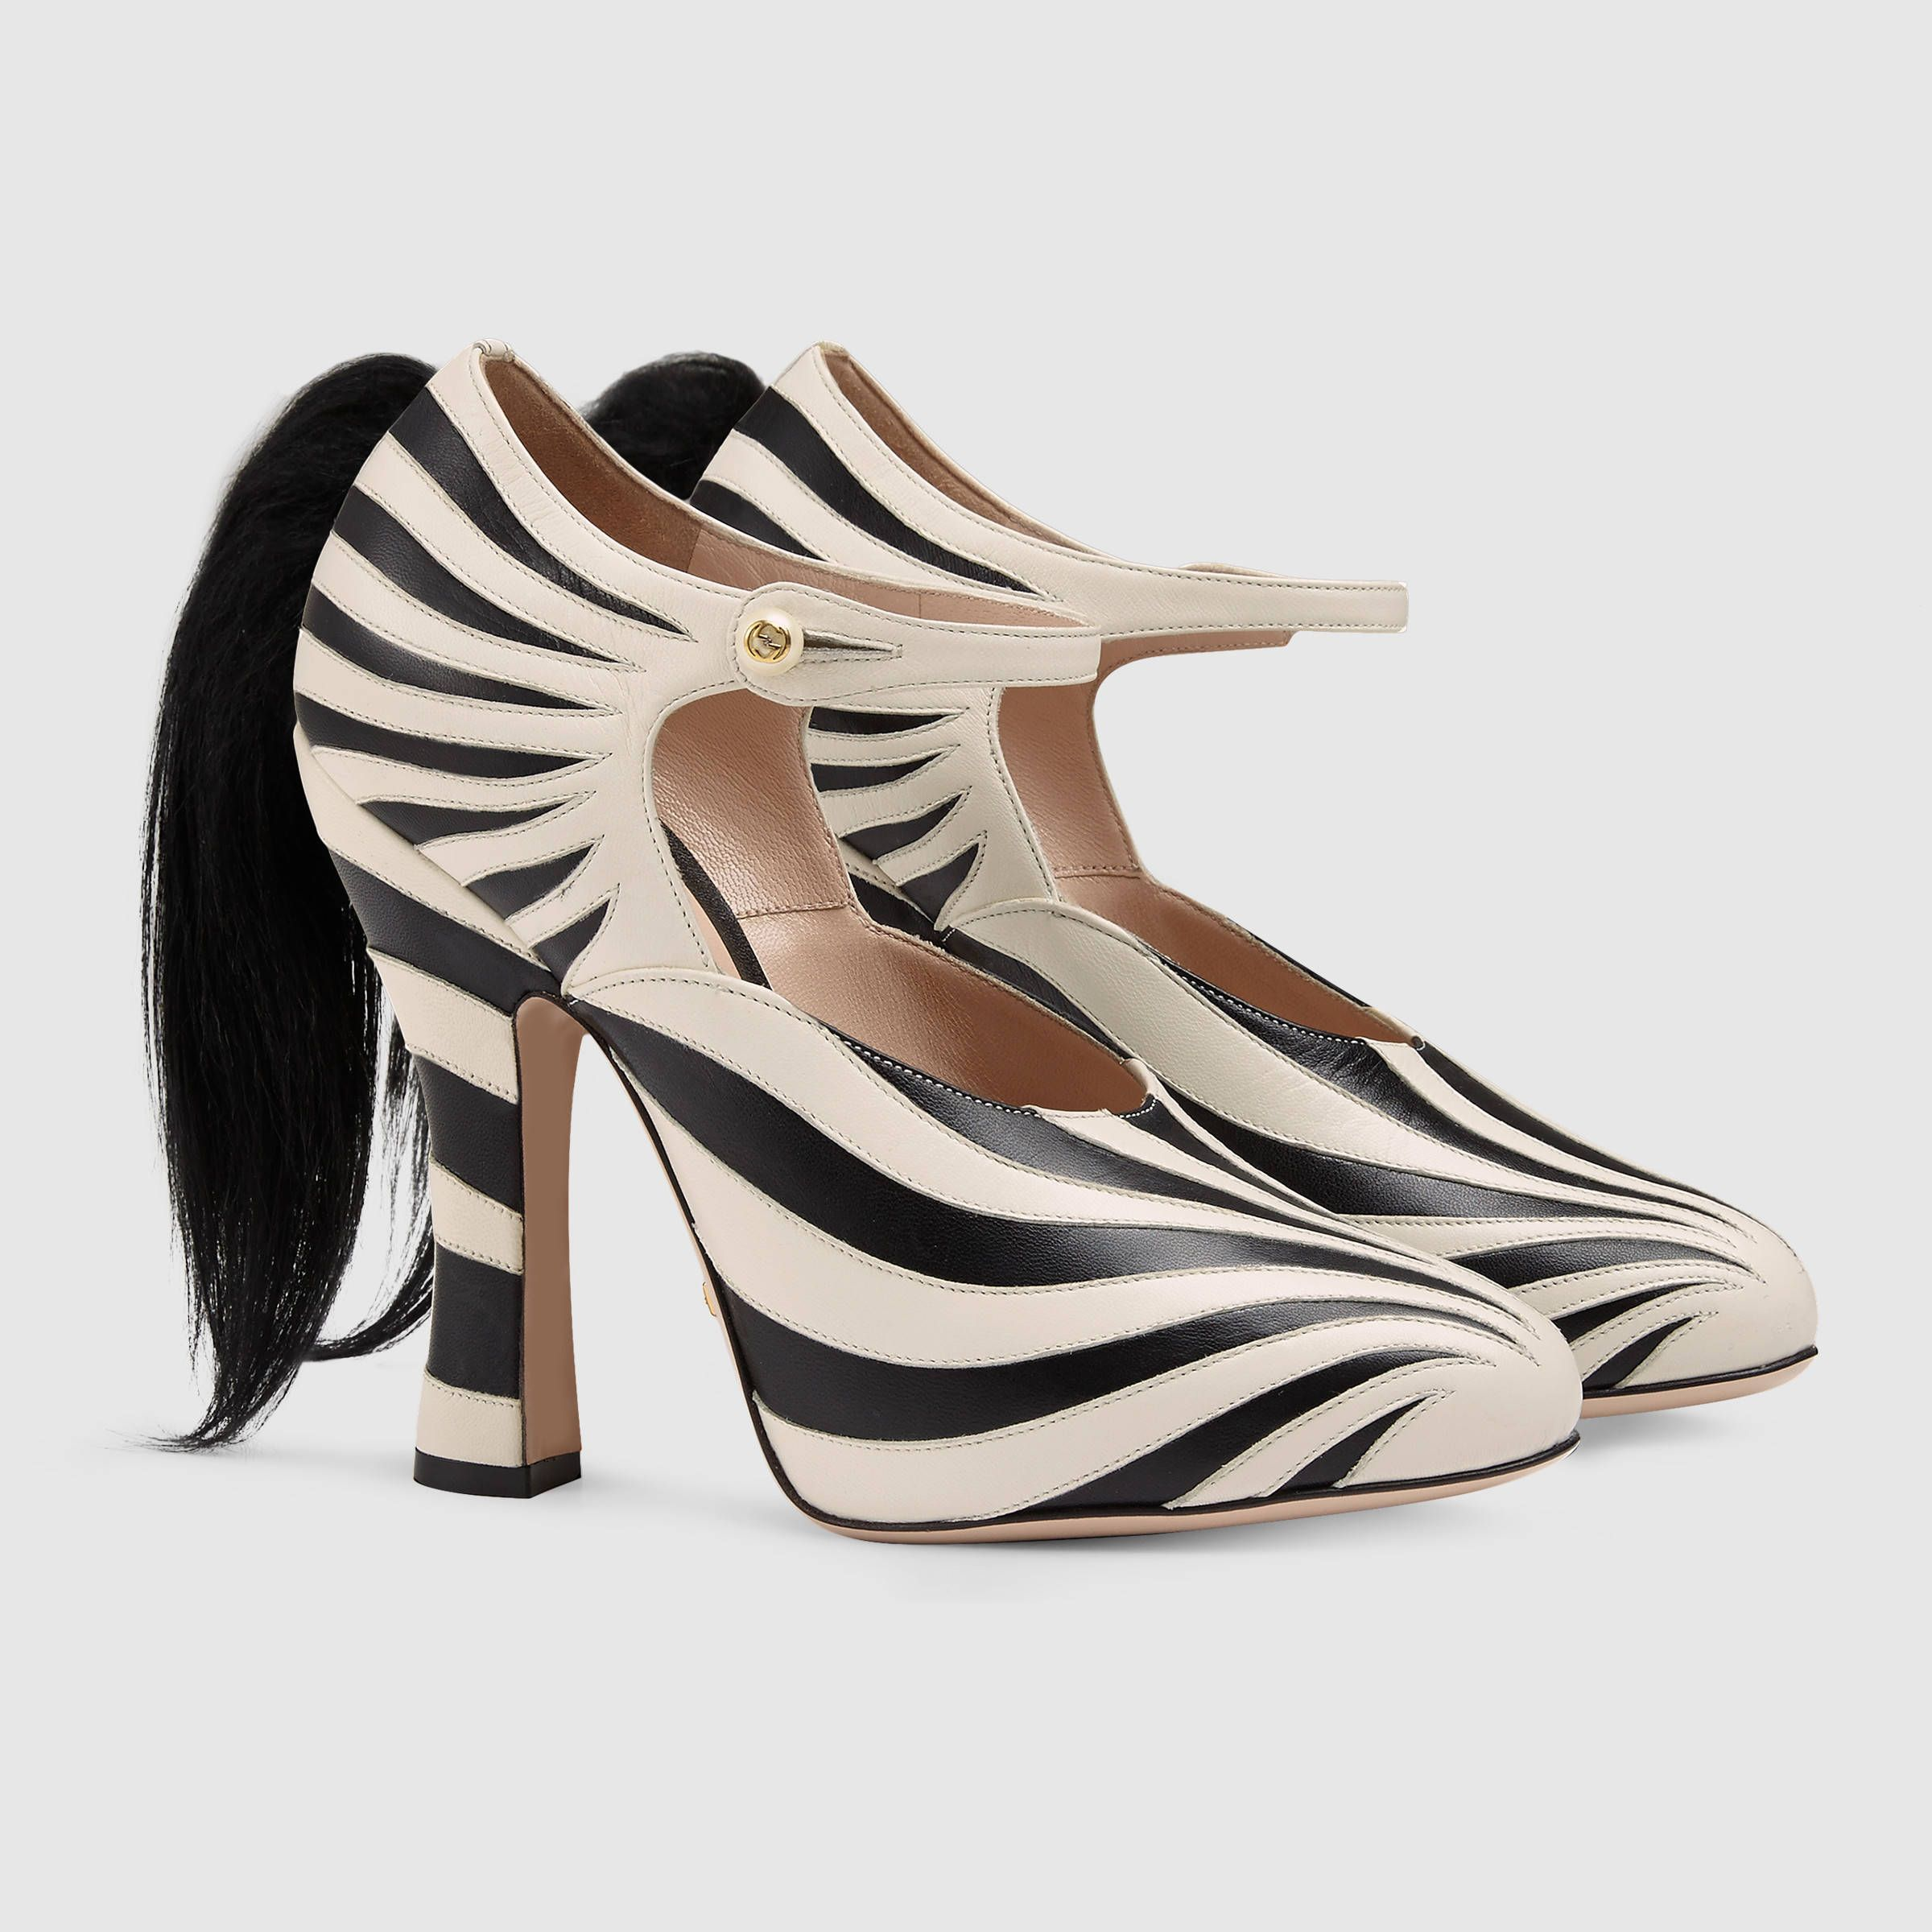 Gucci Zebra Pumps